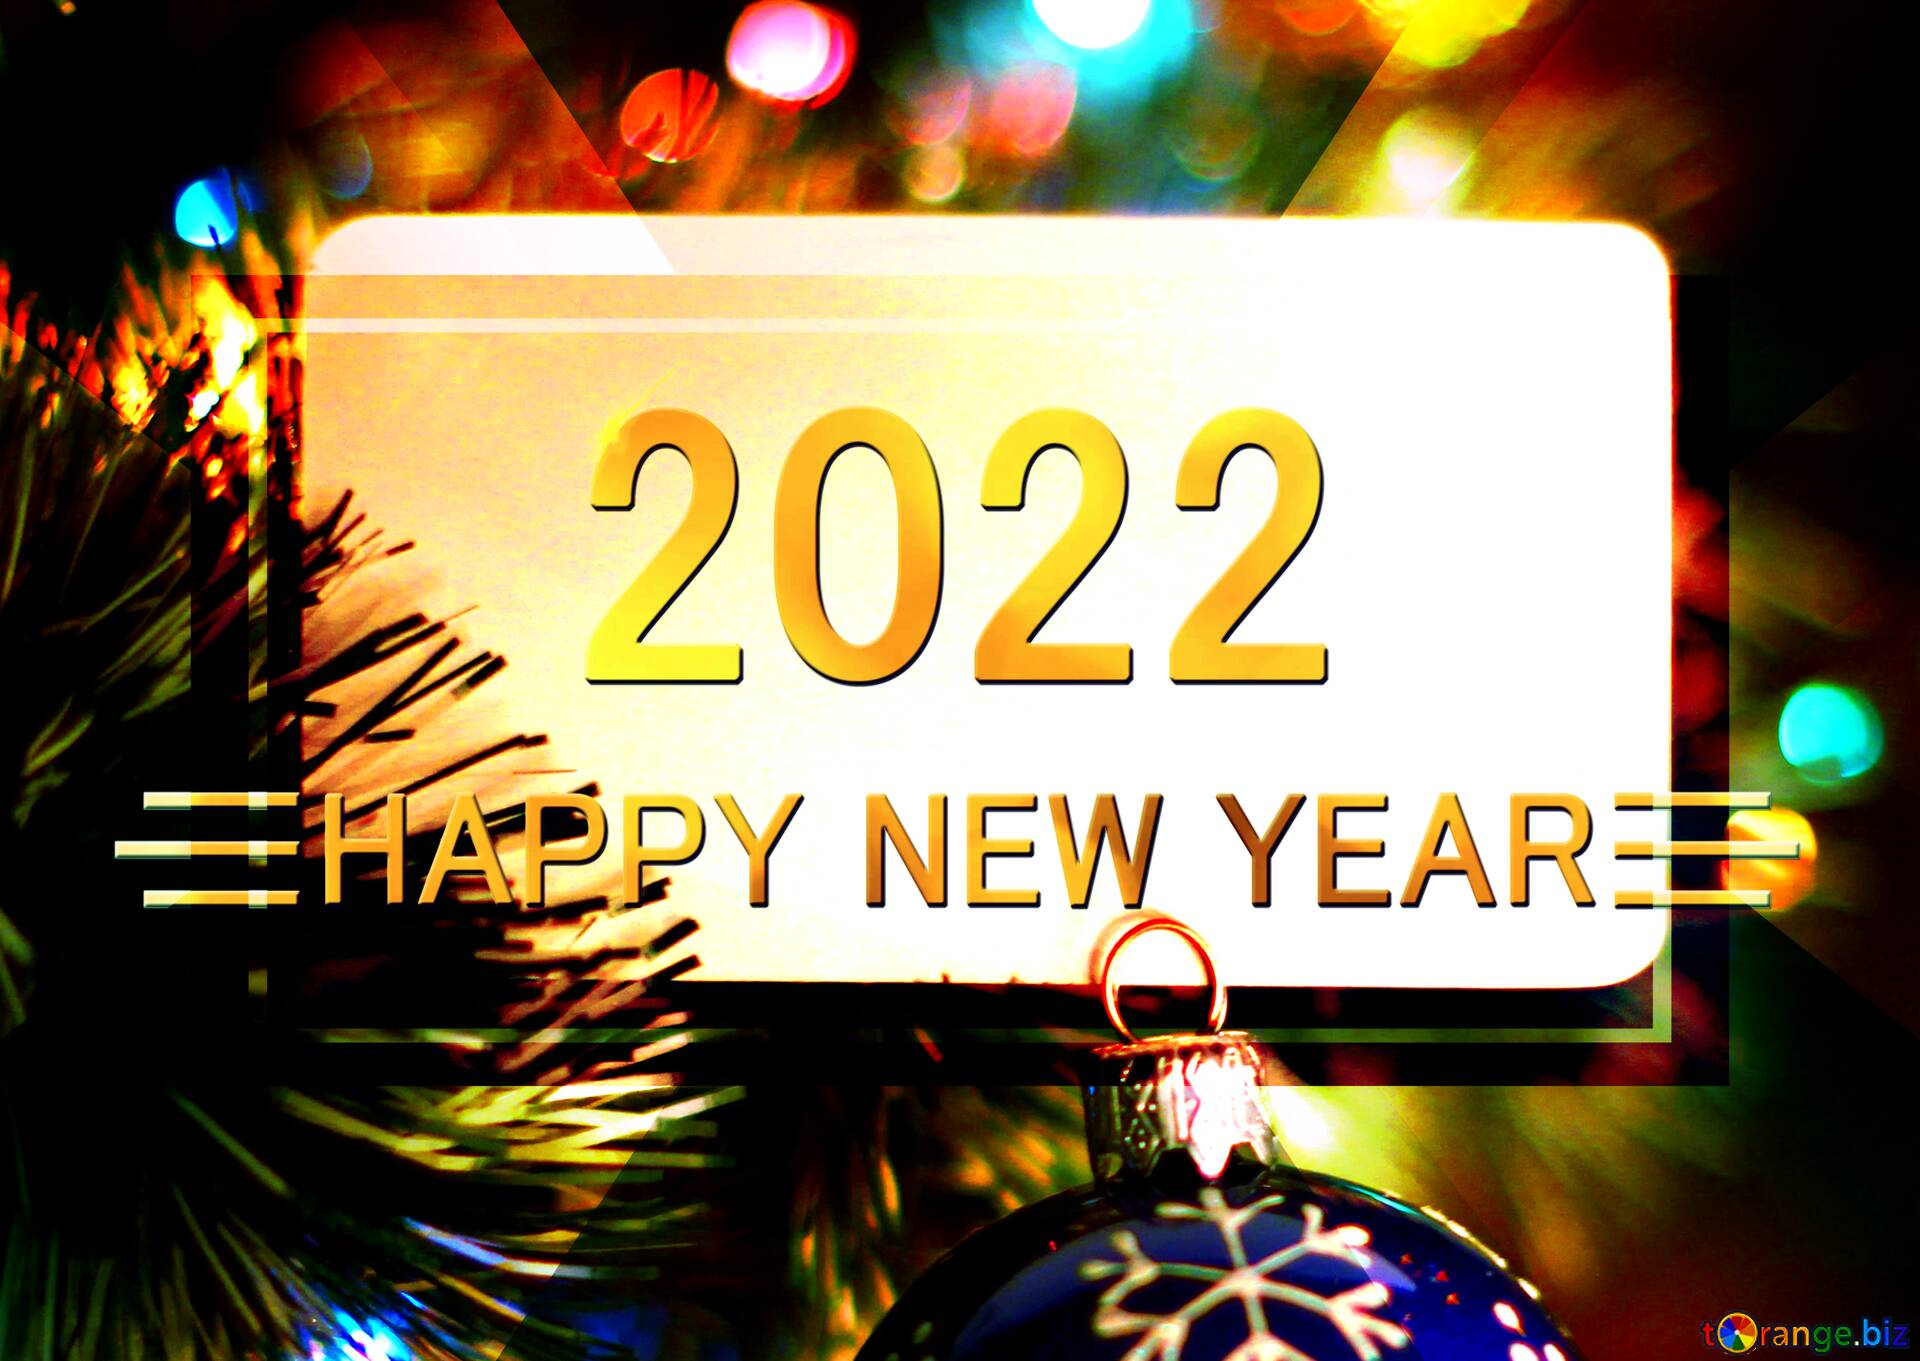 Download Free Picture Invitation Party Happy New Year 2021 Design On Cc By License Free Image Stock Torange Biz Fx 213227